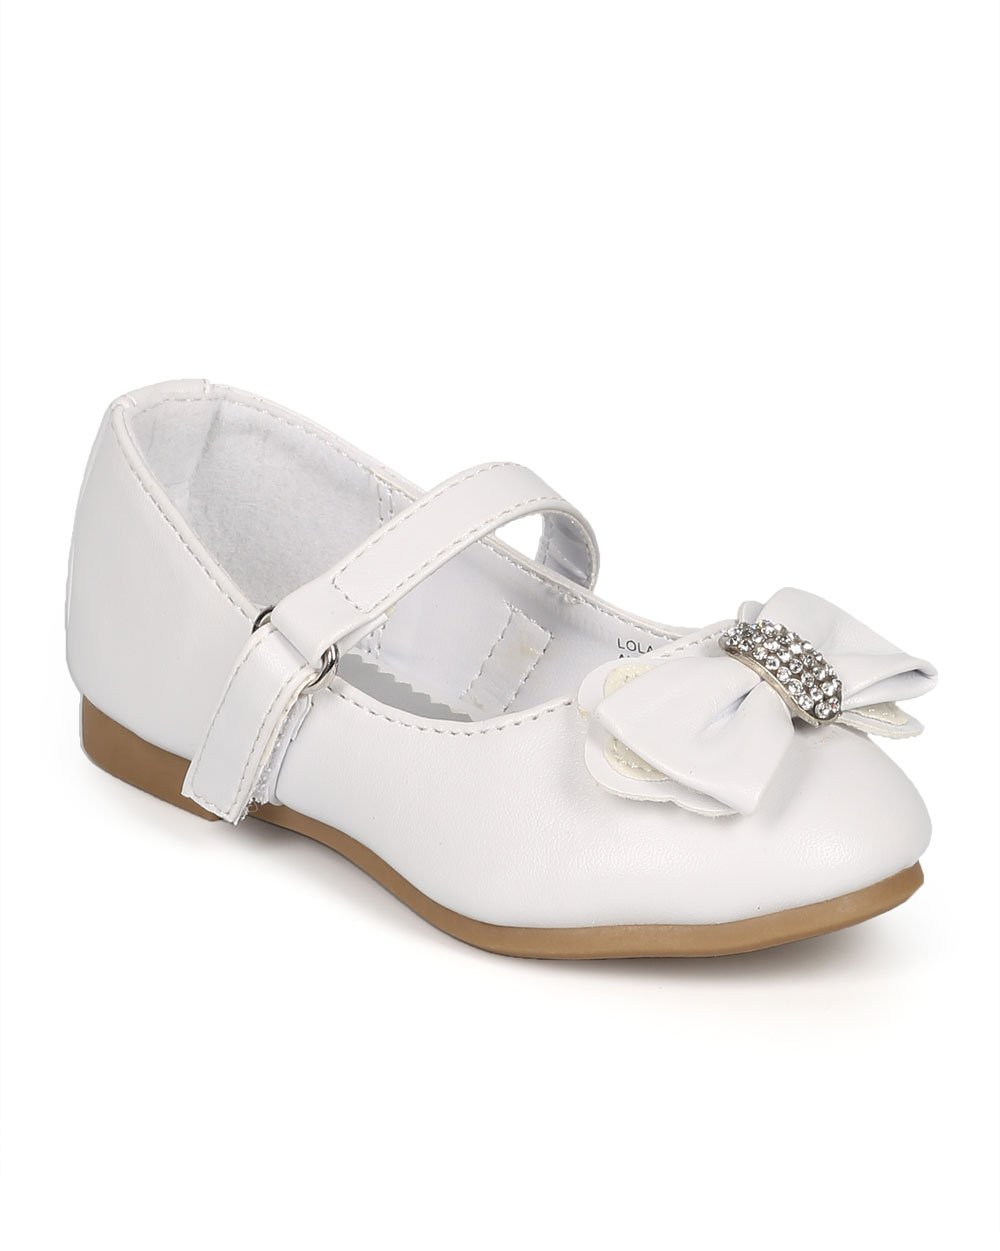 Leatherette Round Toe Rhinestone Bow Ballet Flat (Toddler/Little Girl/Big Girl) CI54 - White Leatherette (Size: Toddler 9)